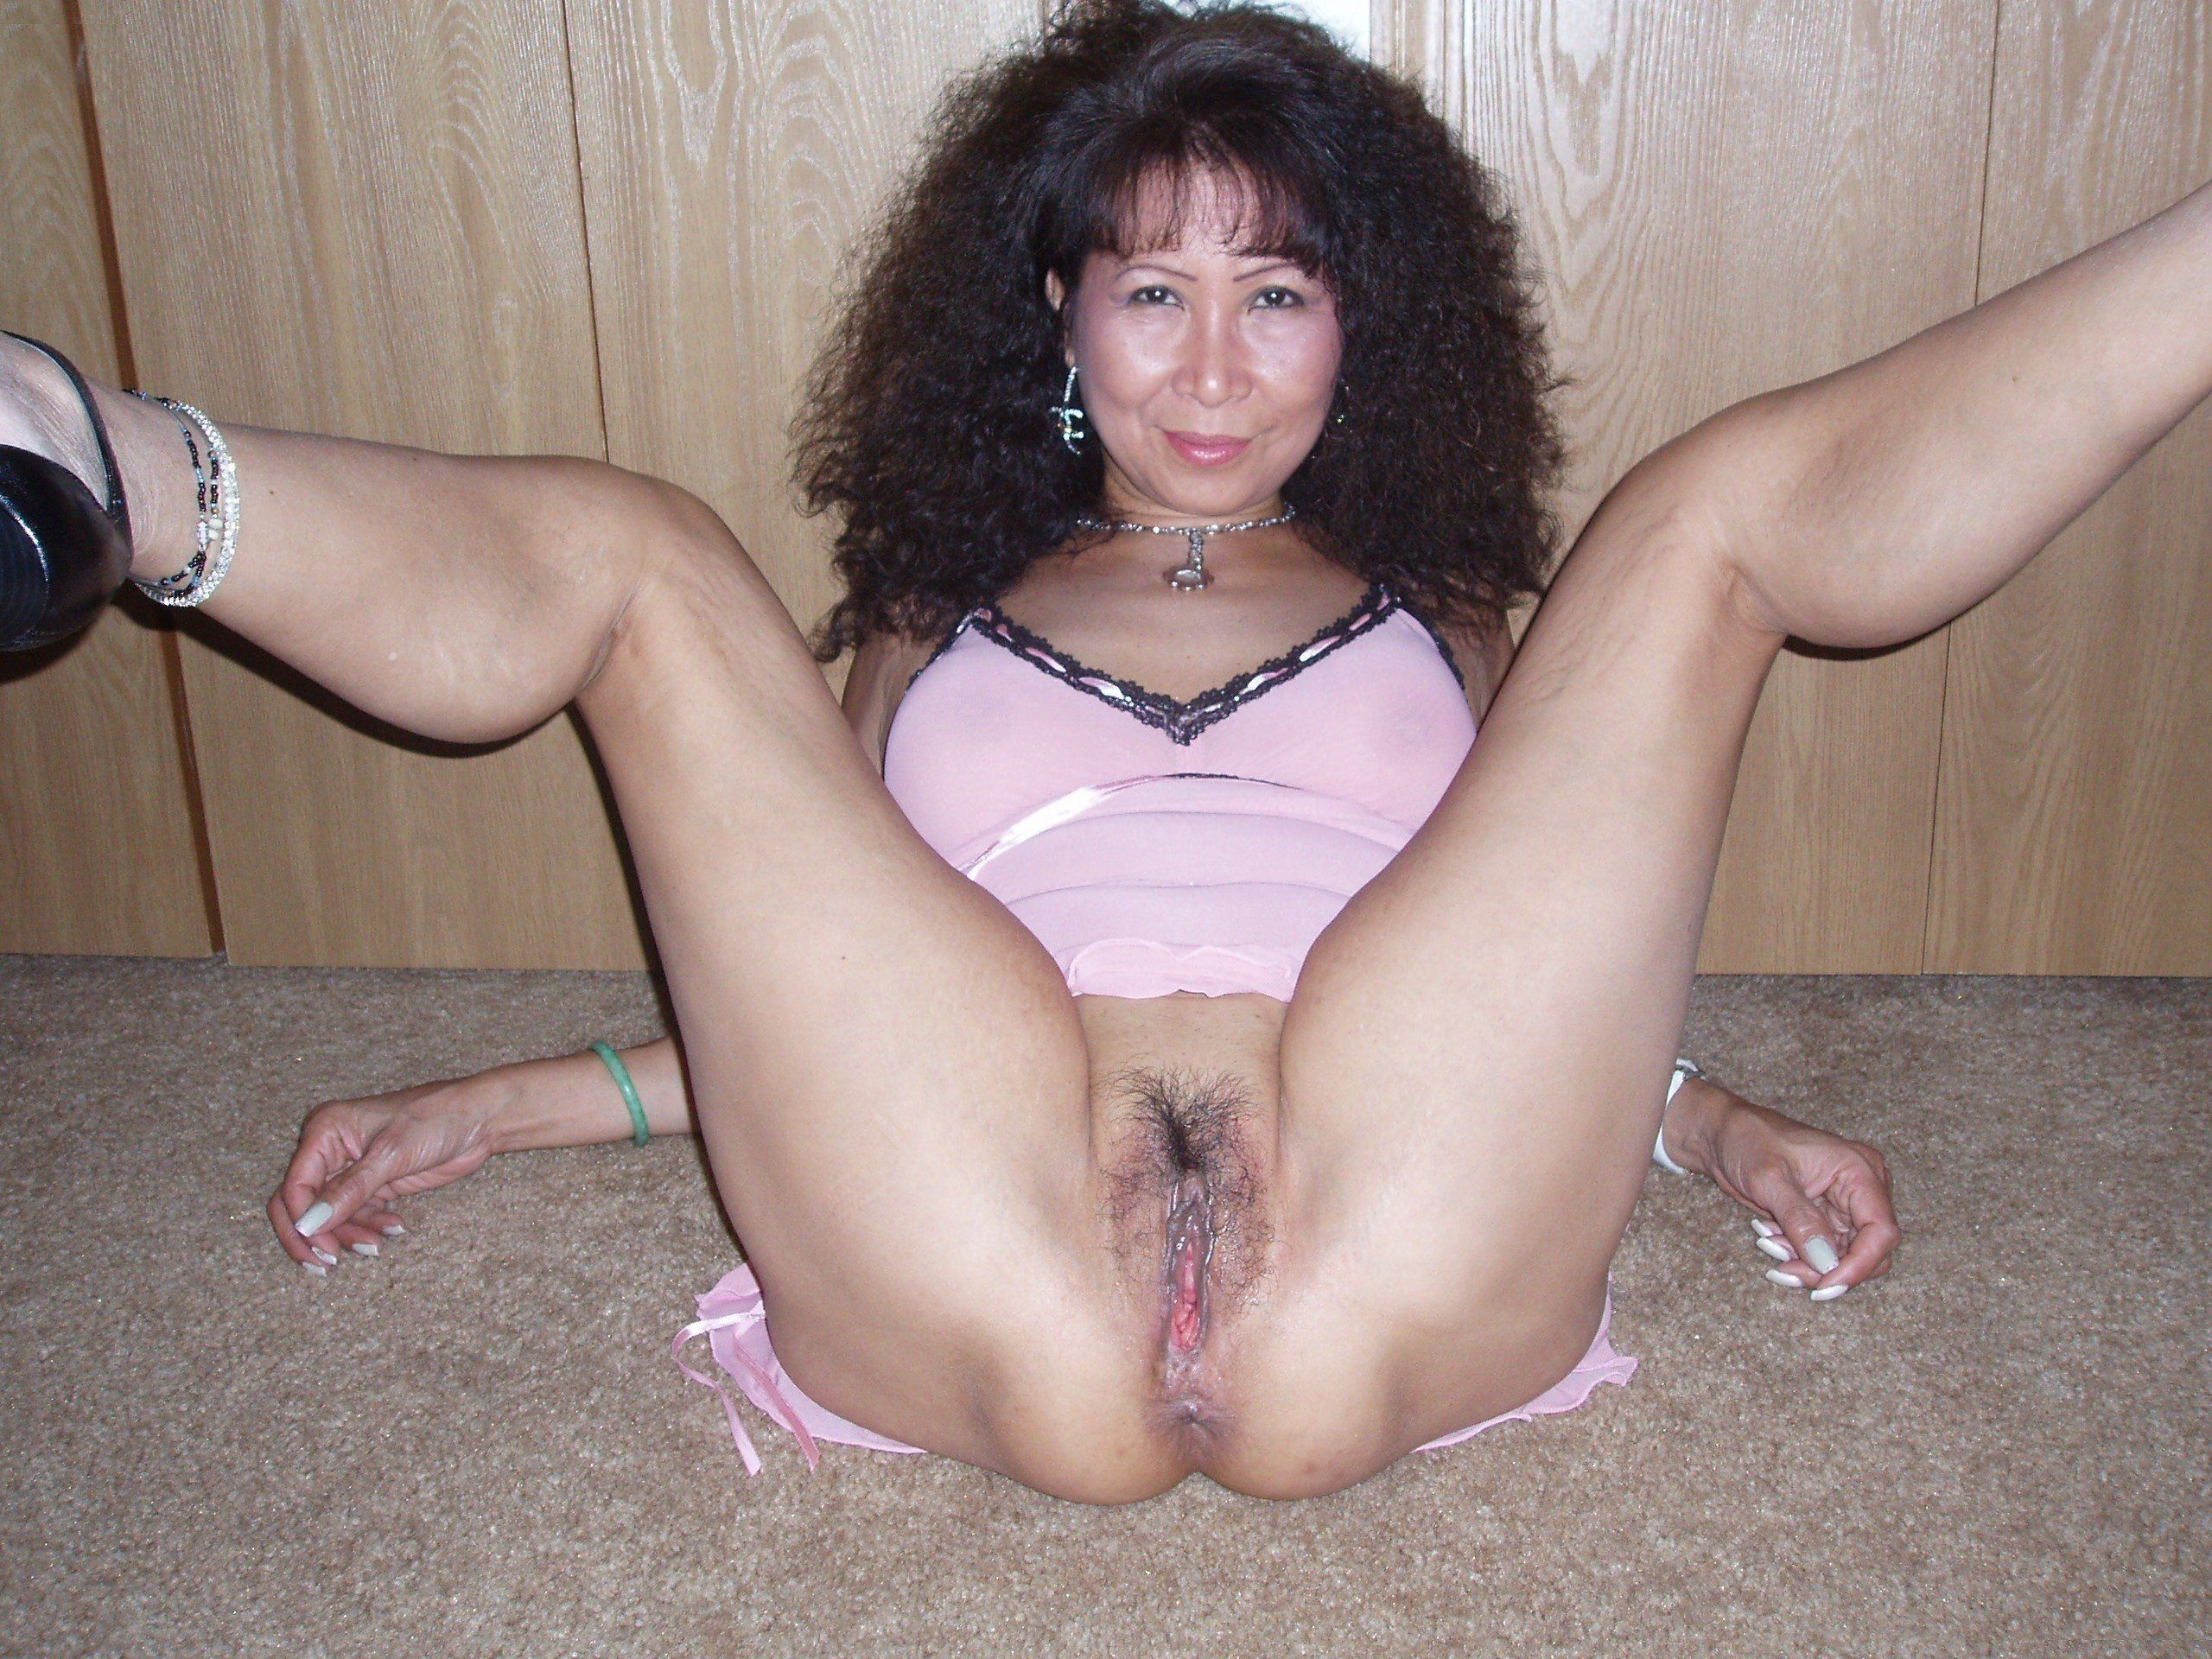 korean mature hd nude Mature Asian Milf Uncensored - Free XXX Images, Best Sex ...